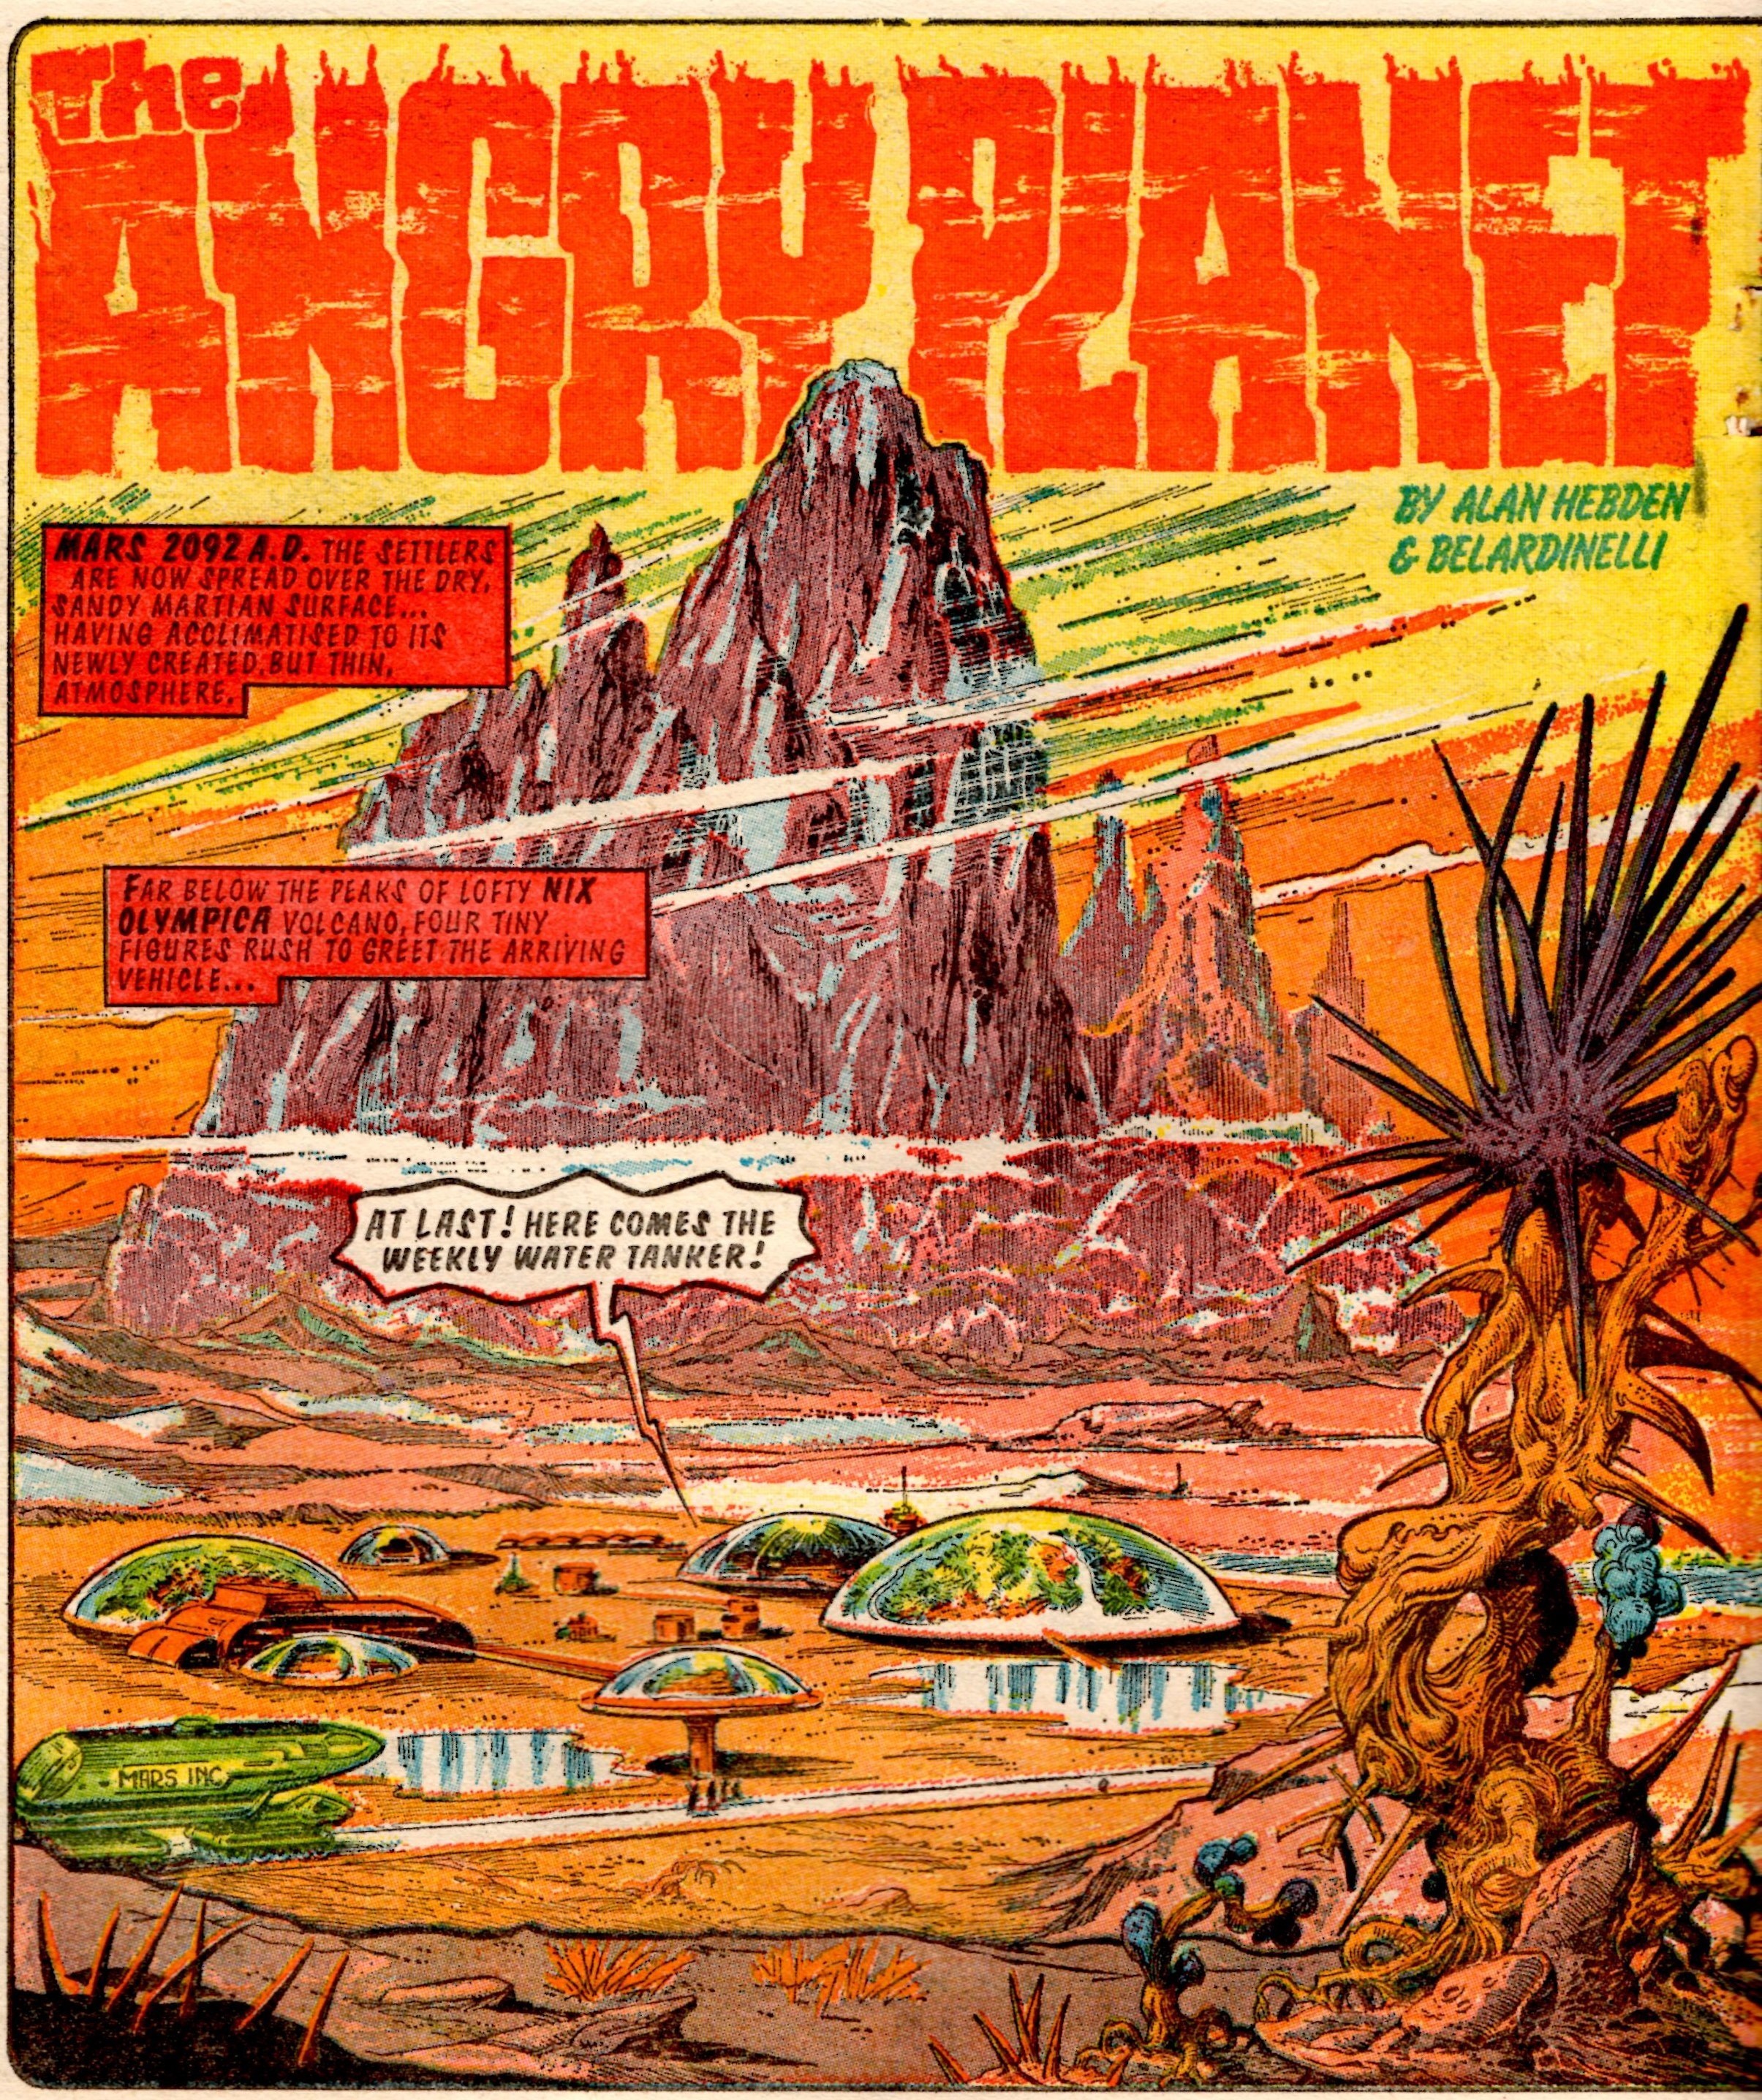 The Angry Planet (Tornado, 24 March 1979): Alan Hebden (writer), Massimo Belardinelli (artist)